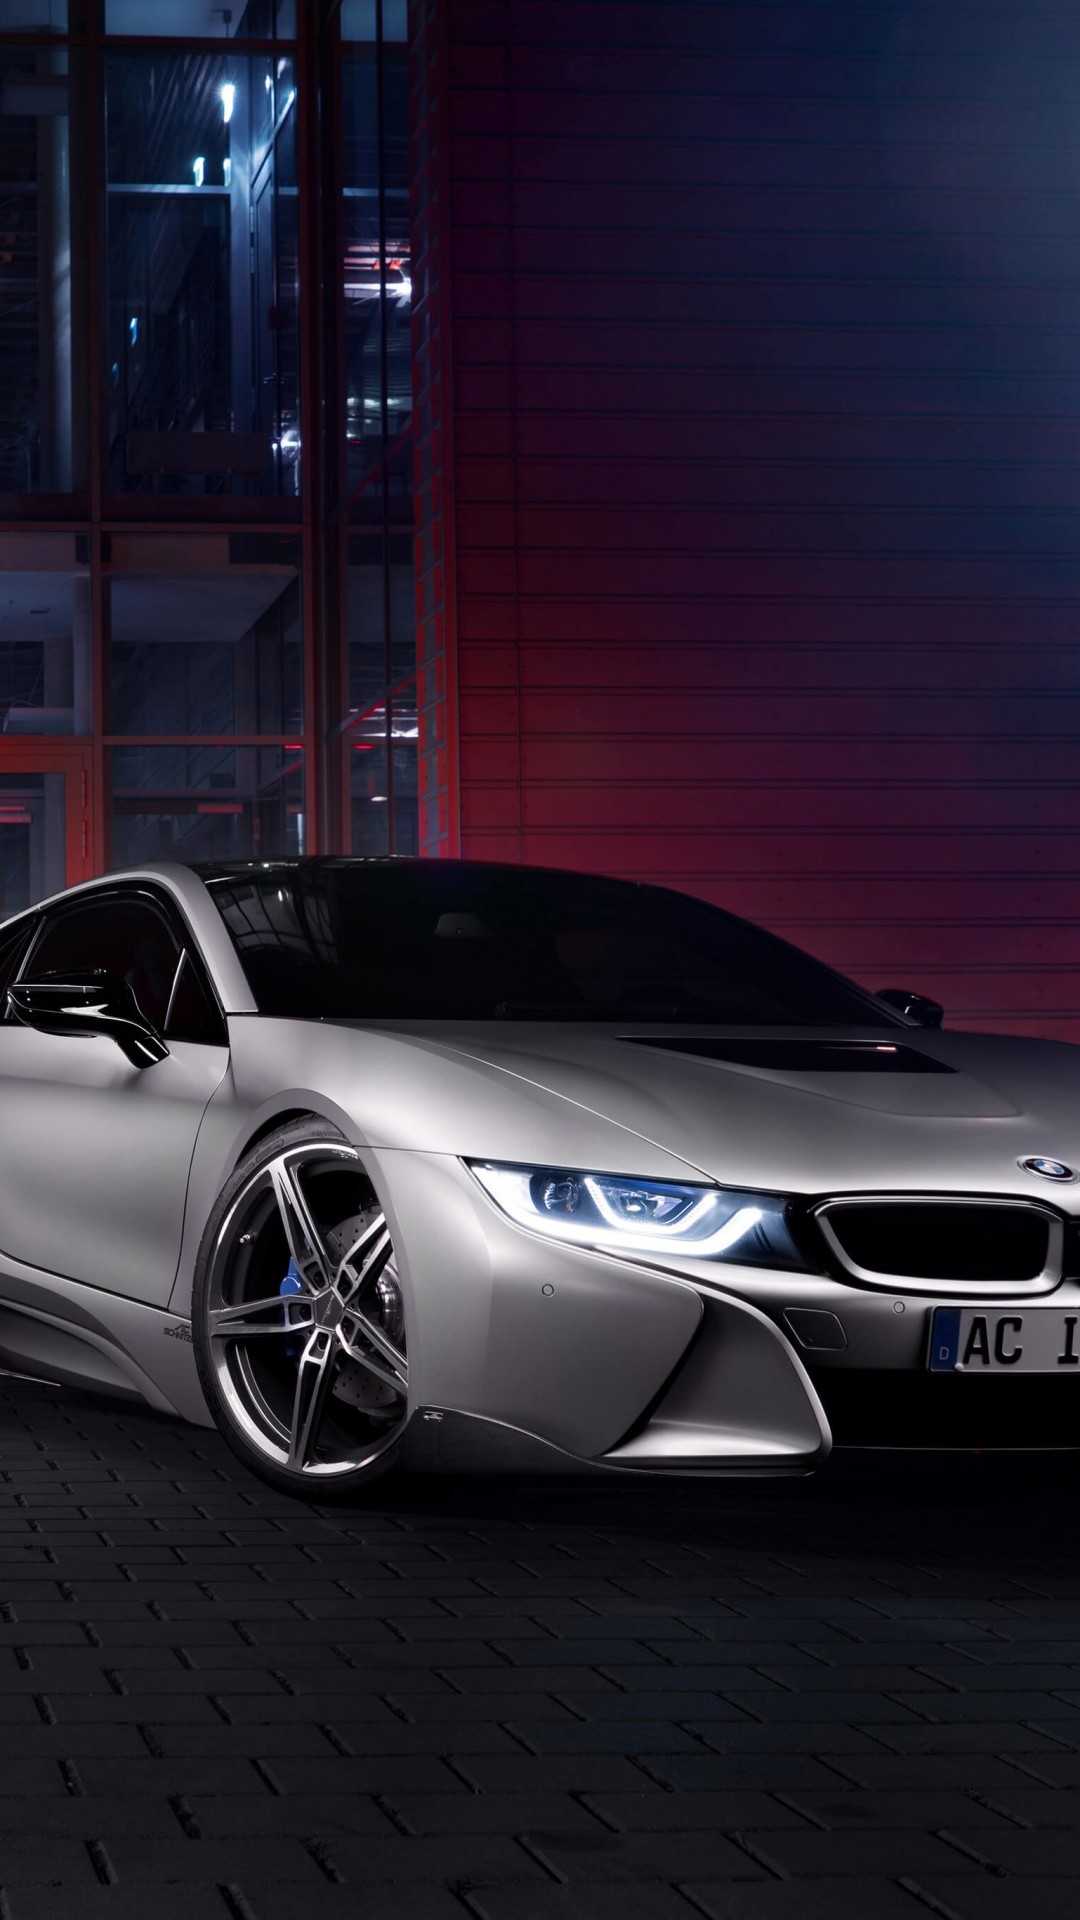 BMW i8 designed by AC Schnitzer Wallpaper for Motorola Moto X